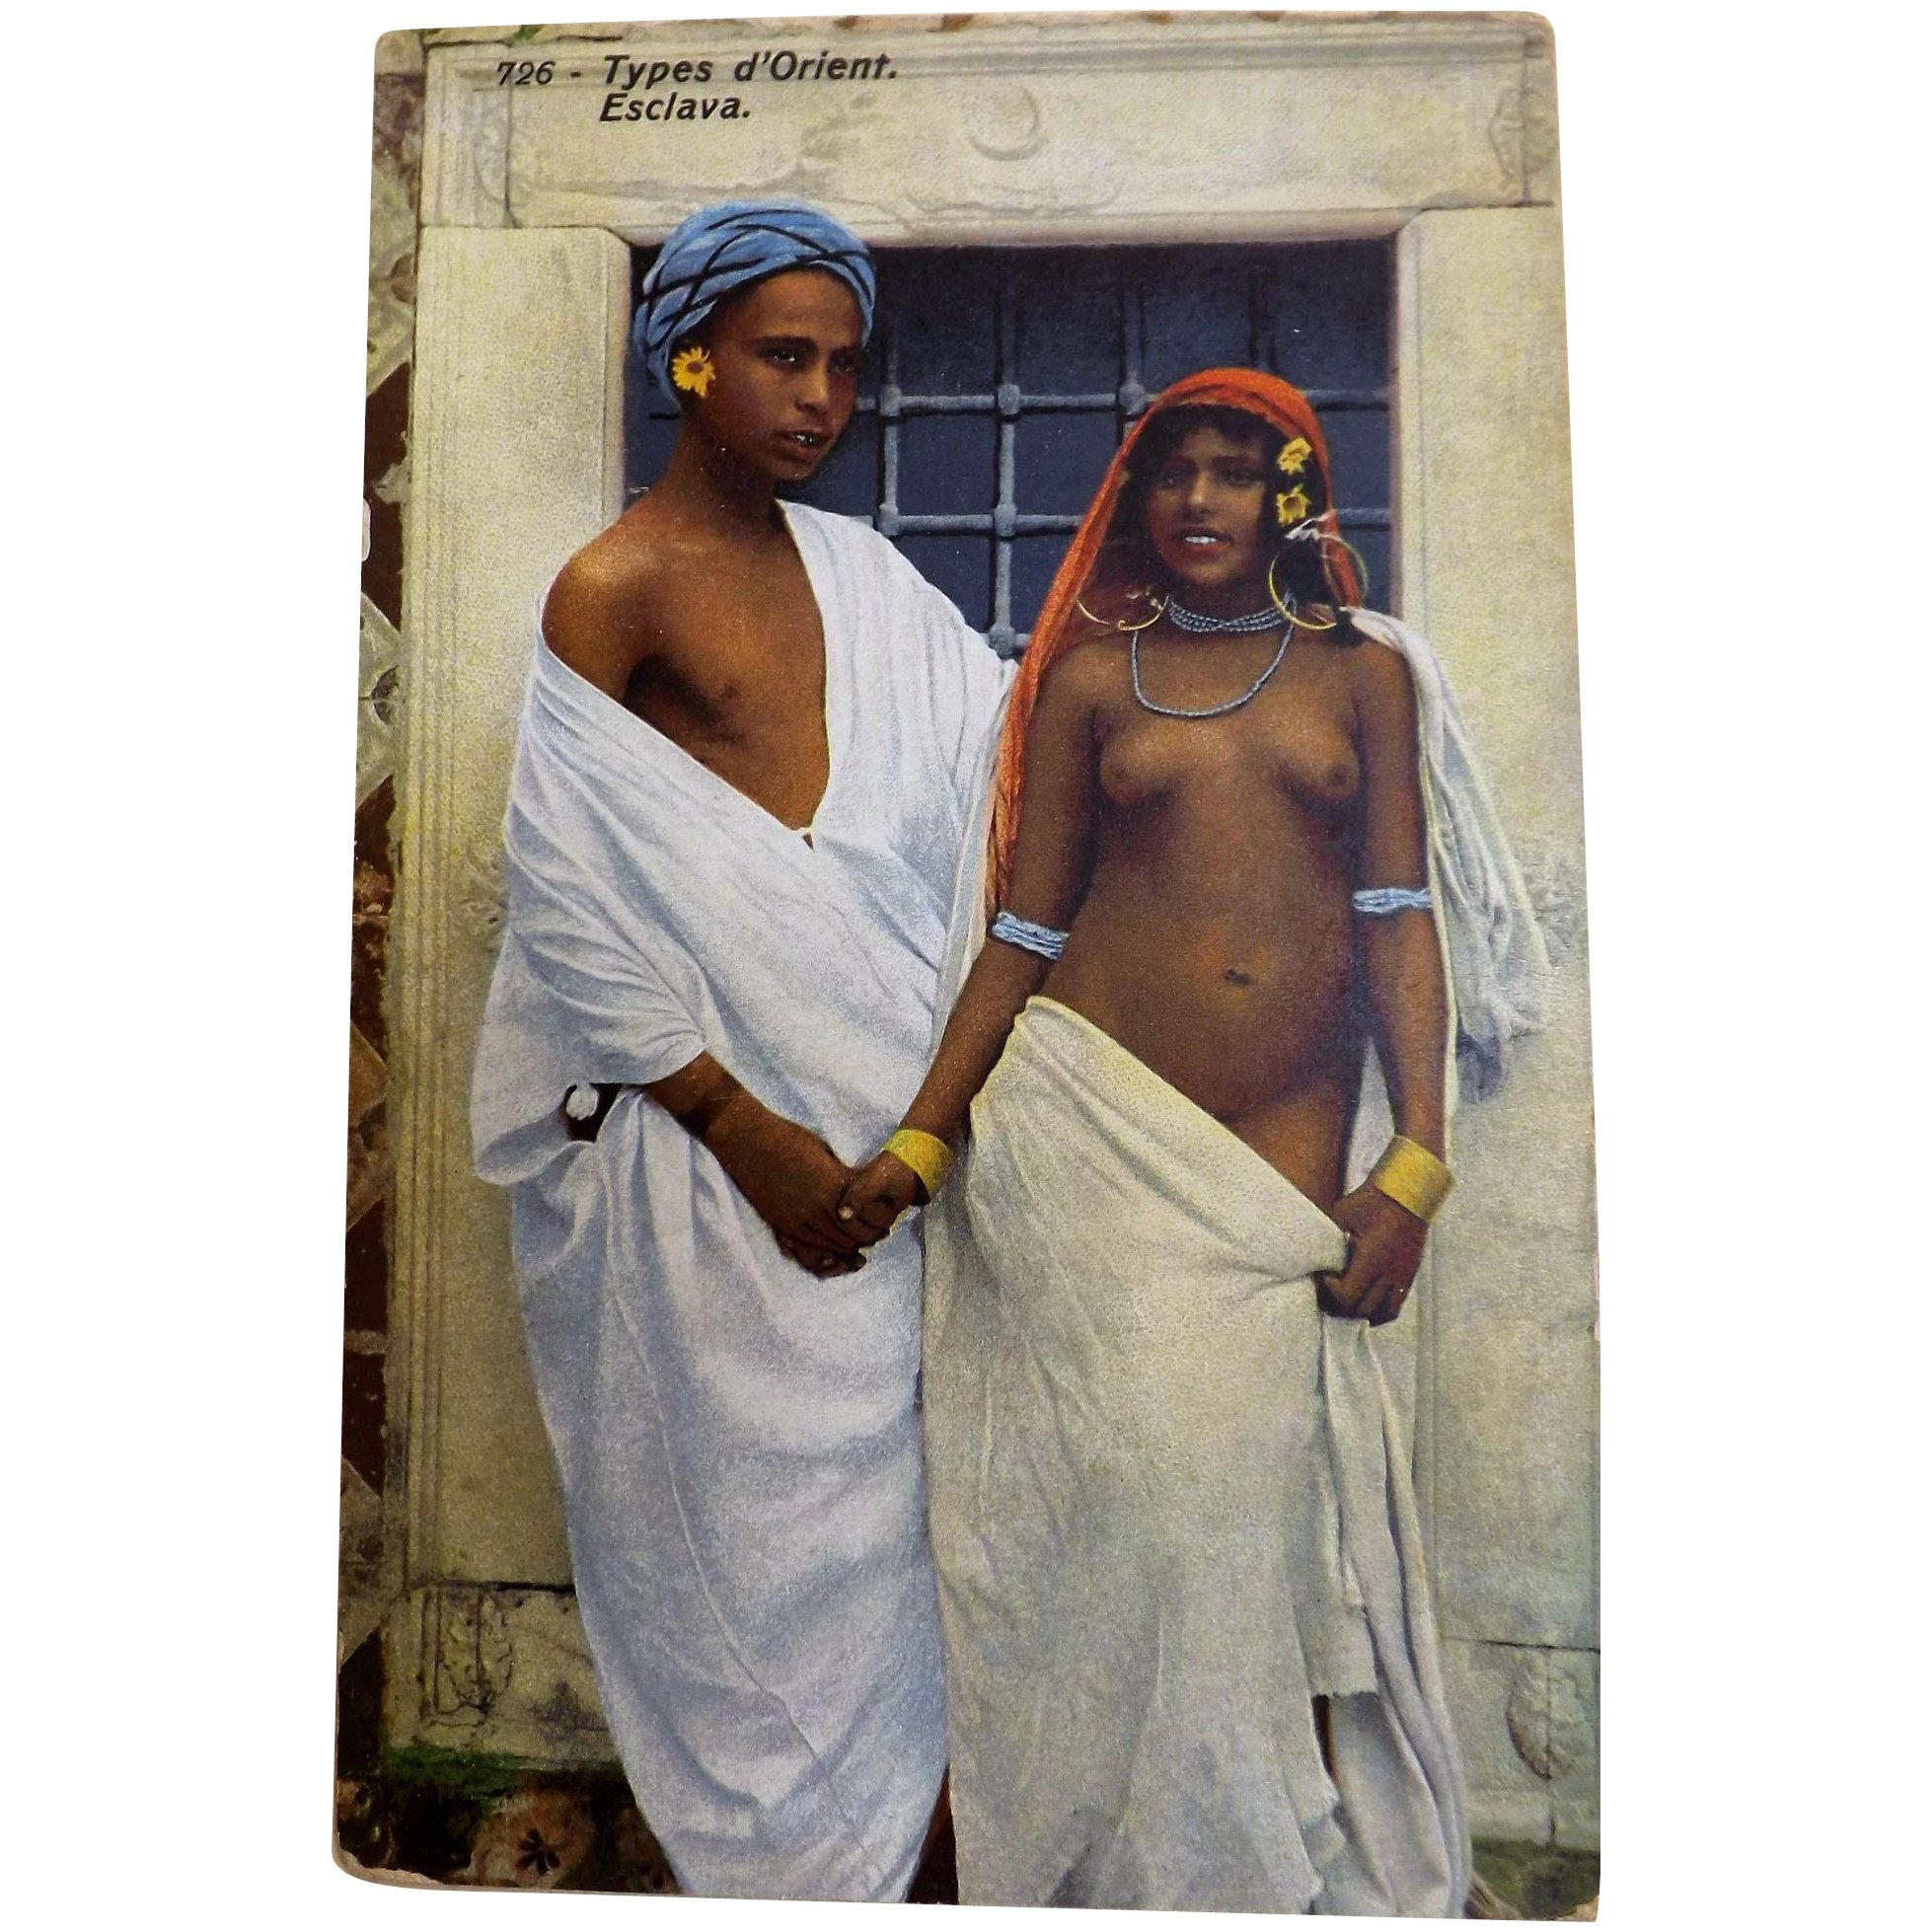 Types d' Orient - Esclava - French Postcard Early 1900's